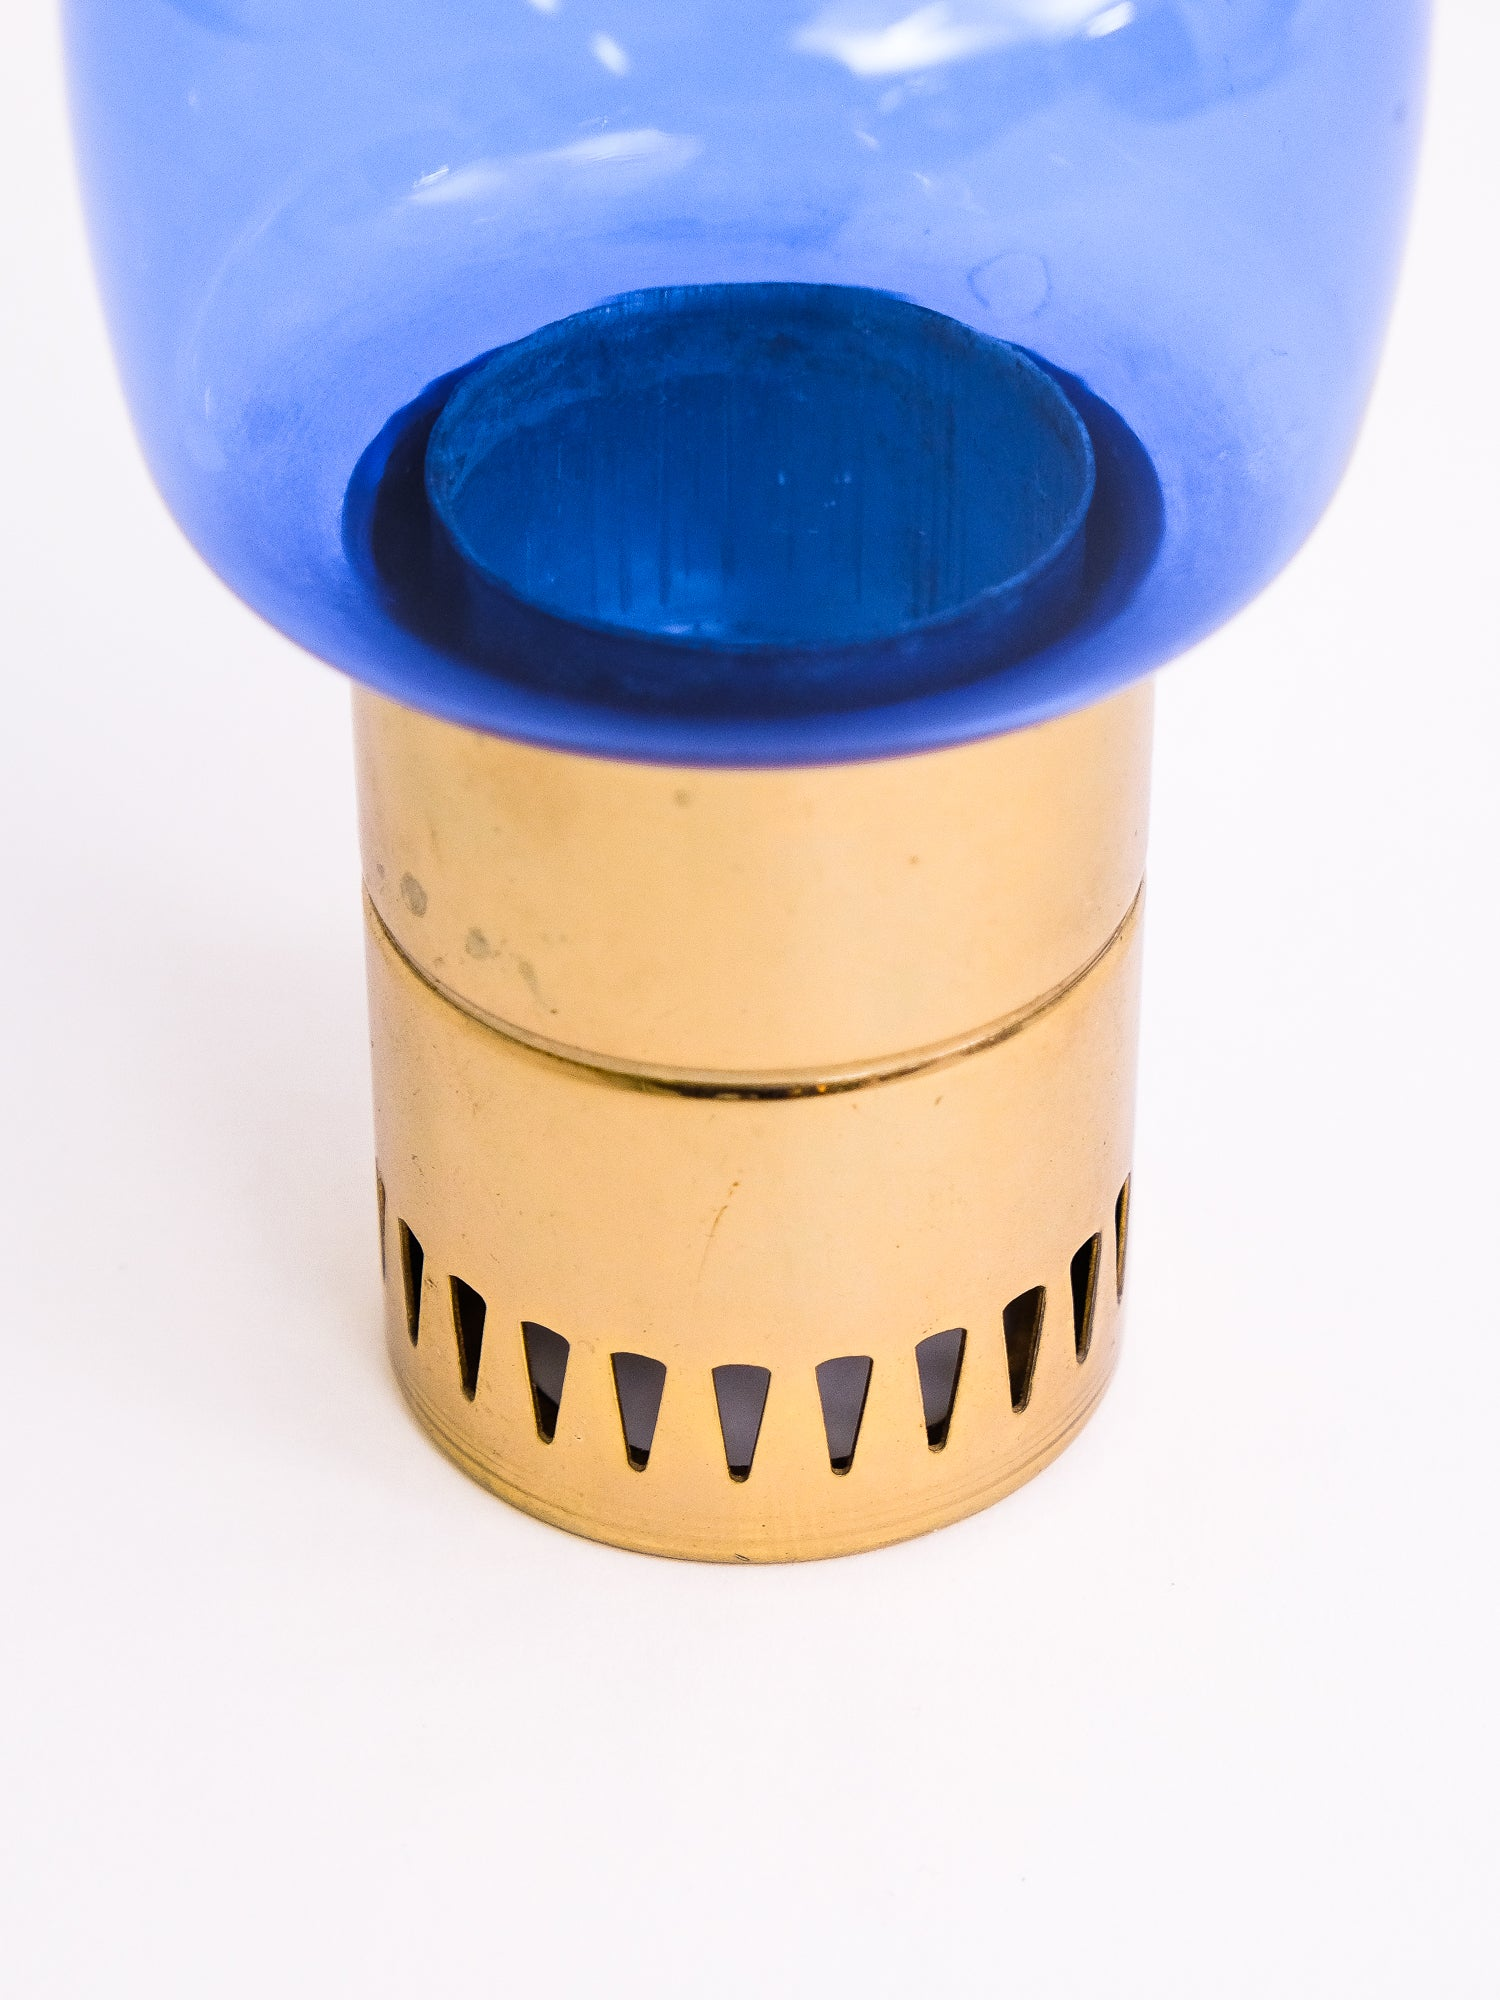 Candleholder by Hans-Agne Jakobsson for AB Markaryd, 1950s